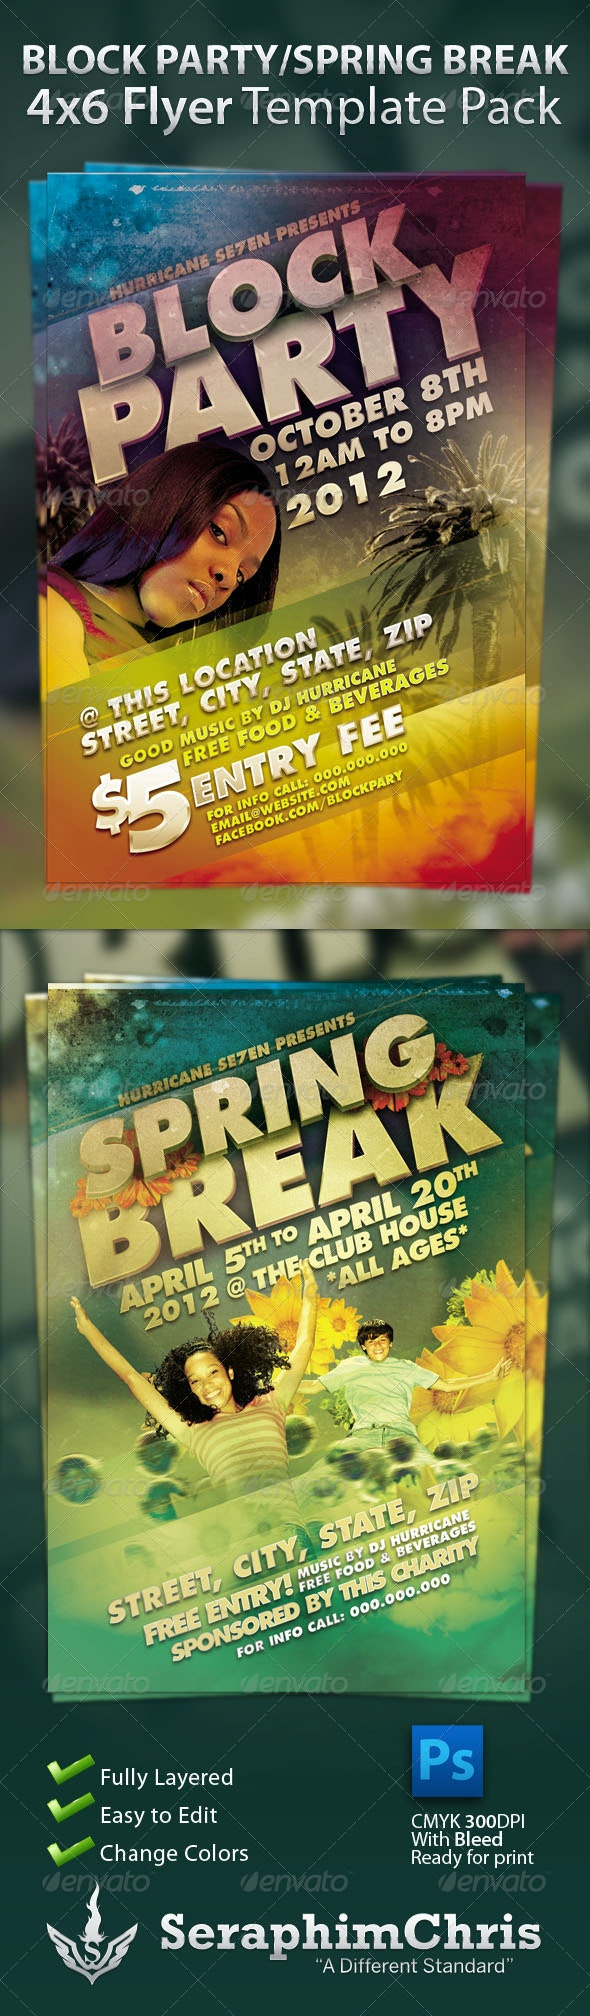 Block Party and Spring Break Flyer Template Pack - Clubs & Parties Events